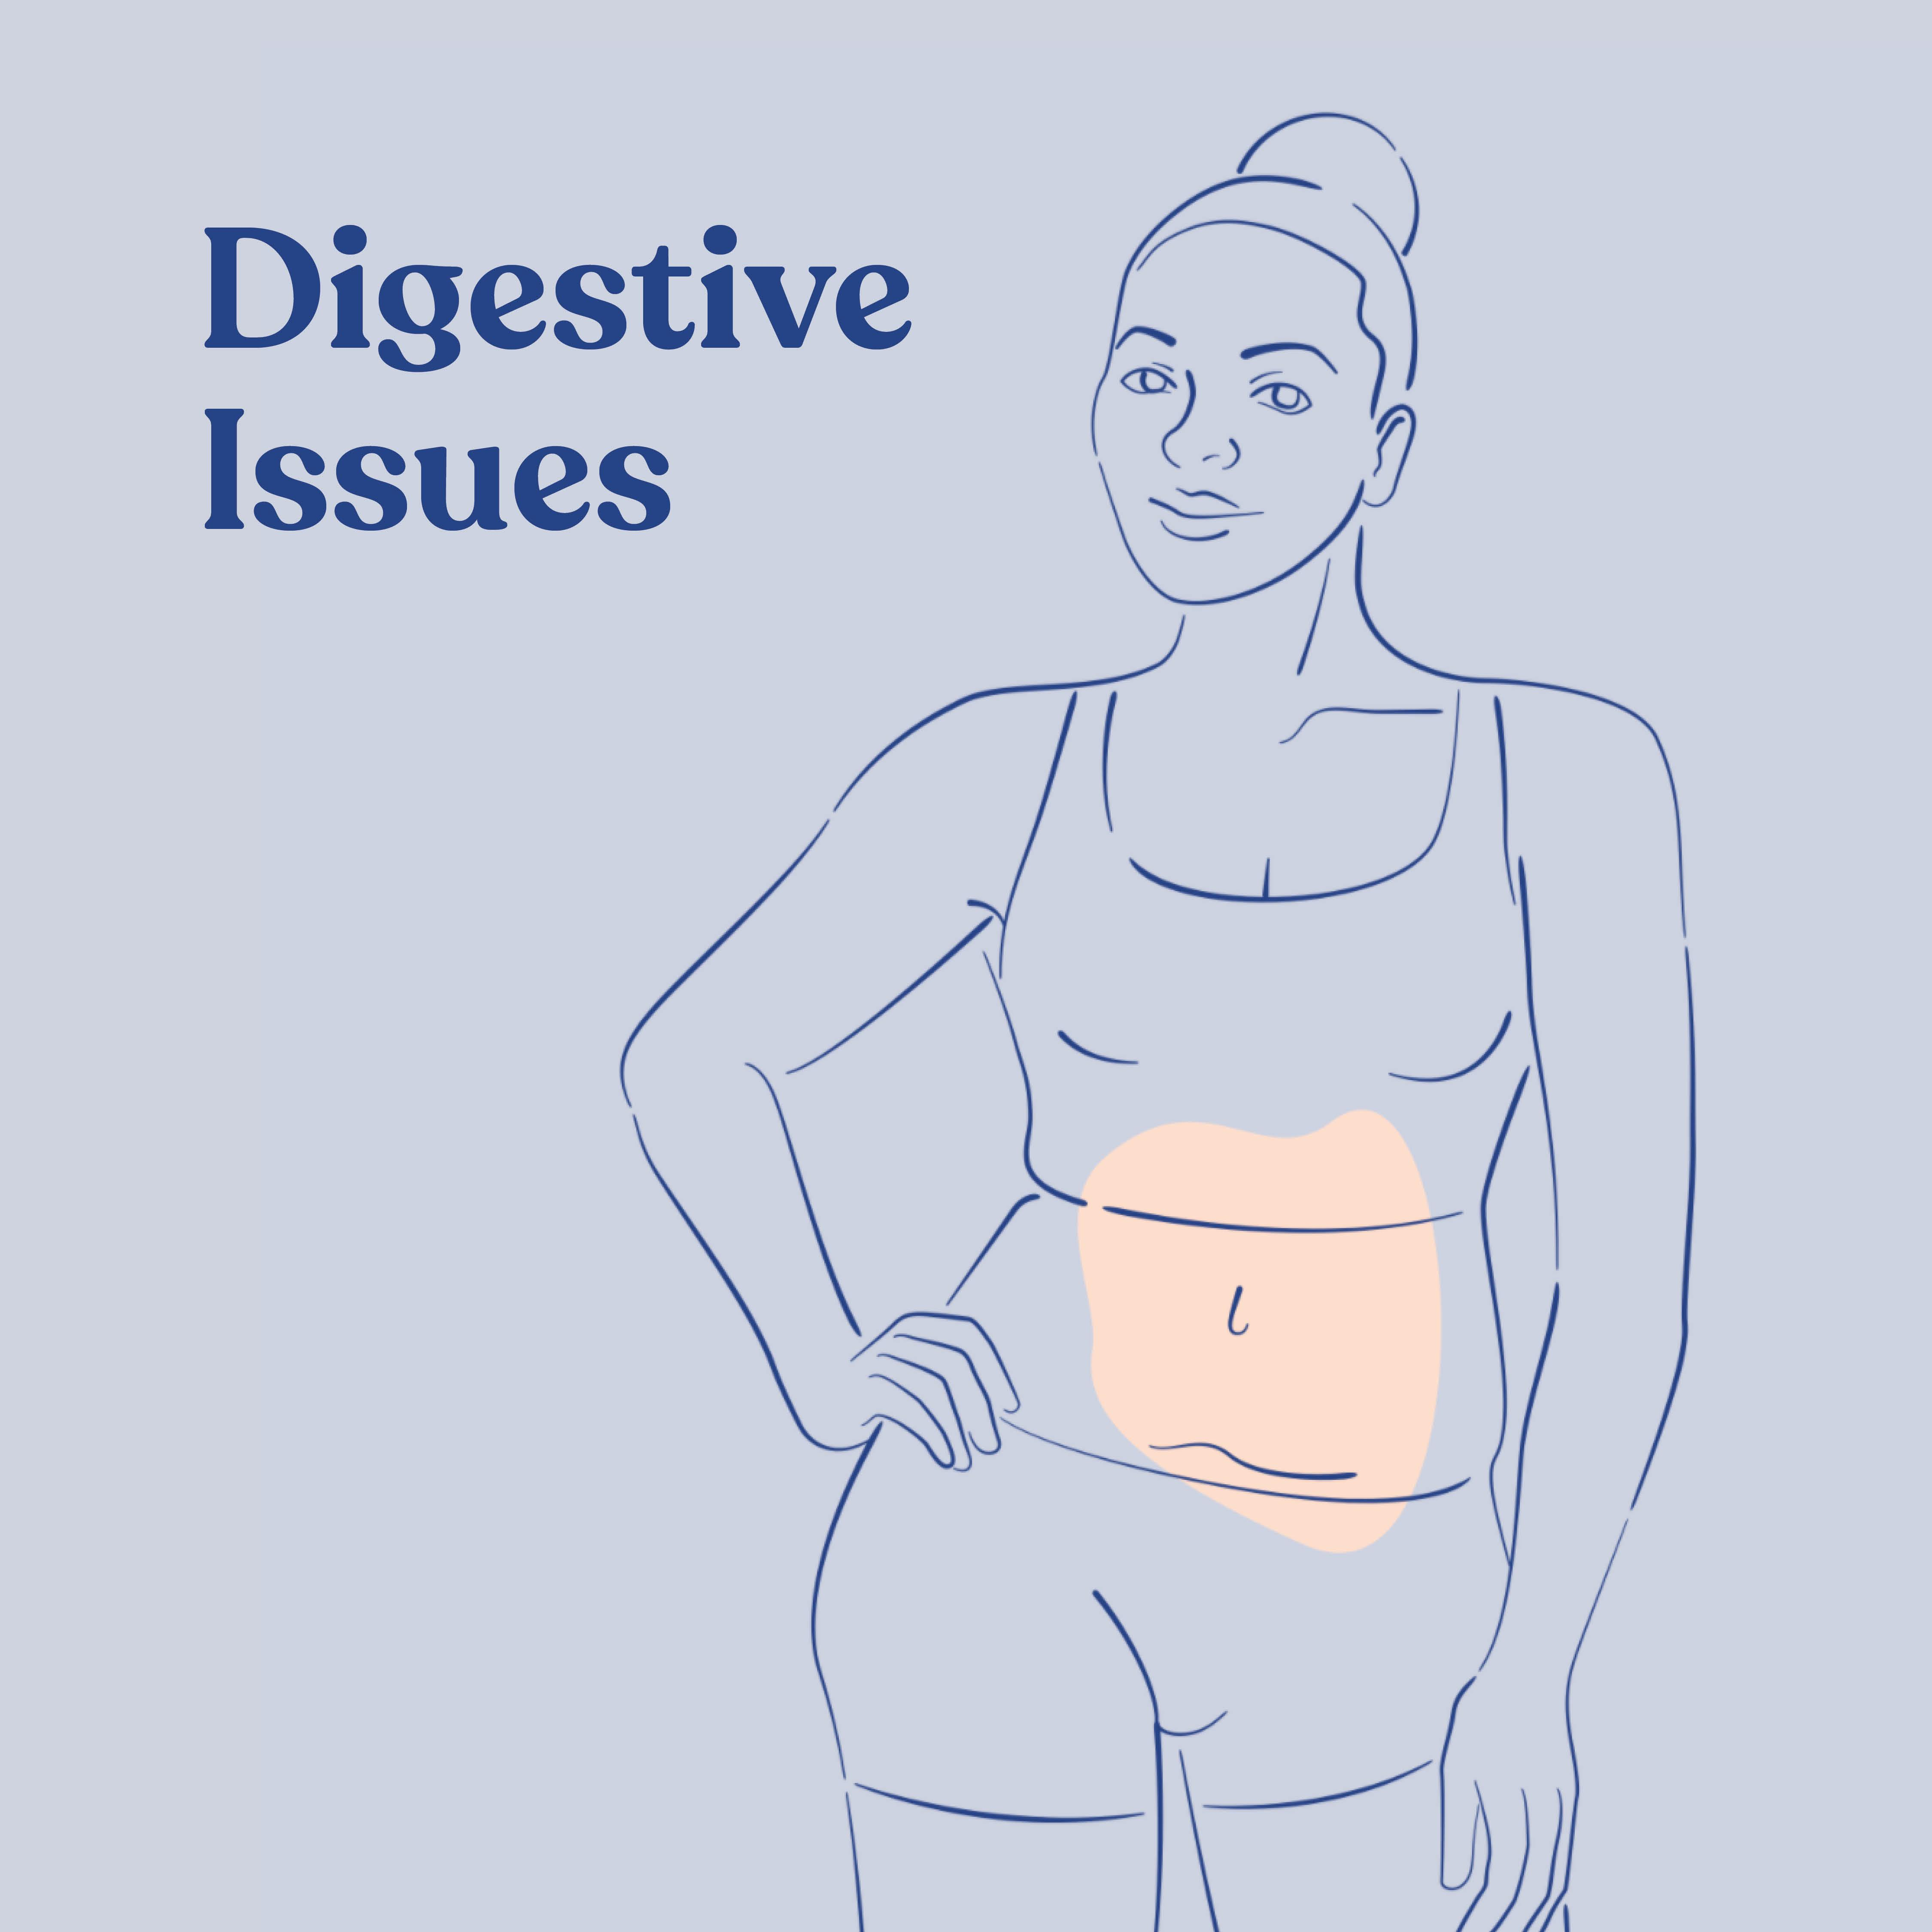 Digestive Issues, Symptoms treated by Acessa Procedure